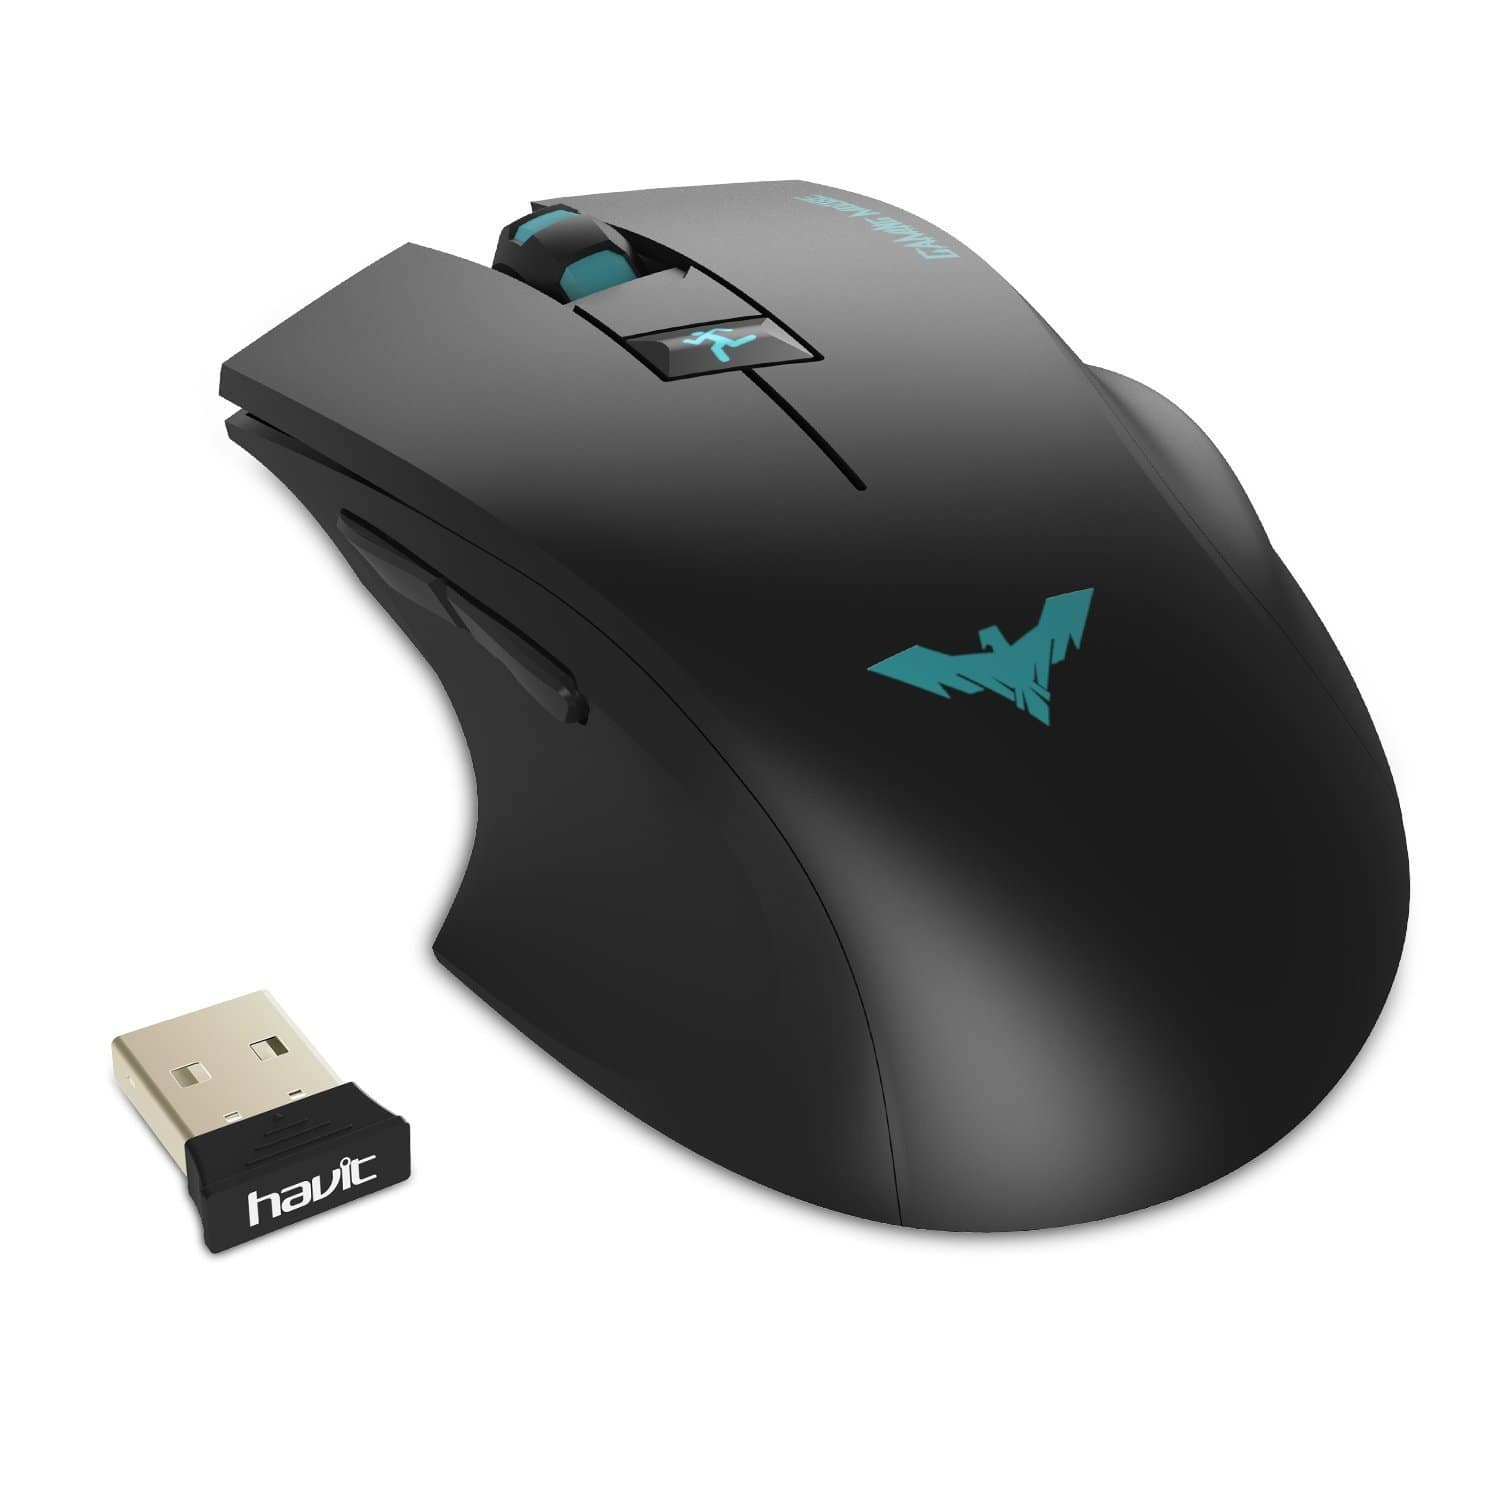 HAVIT 2.4GHz Adjustable 2000 DPI Wireless Gaming Mouse  $5